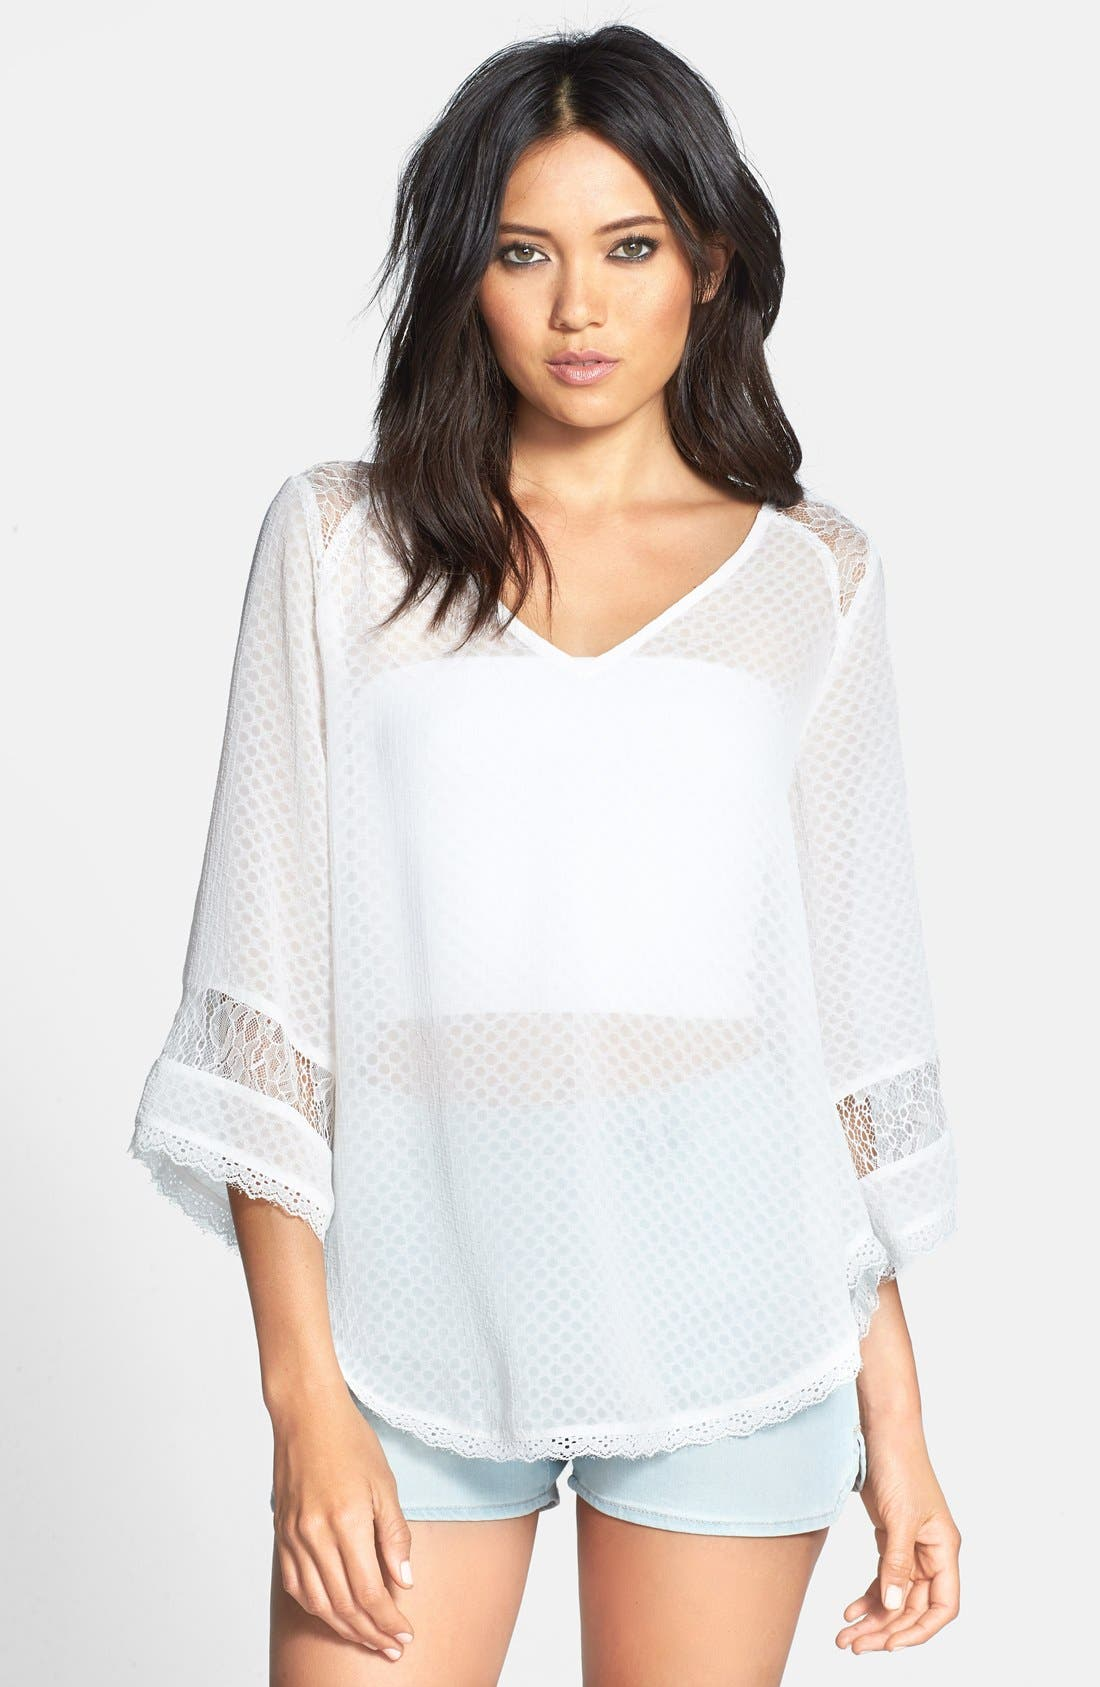 Alternate Image 1 Selected - ASTR Lace Inset Textured Top